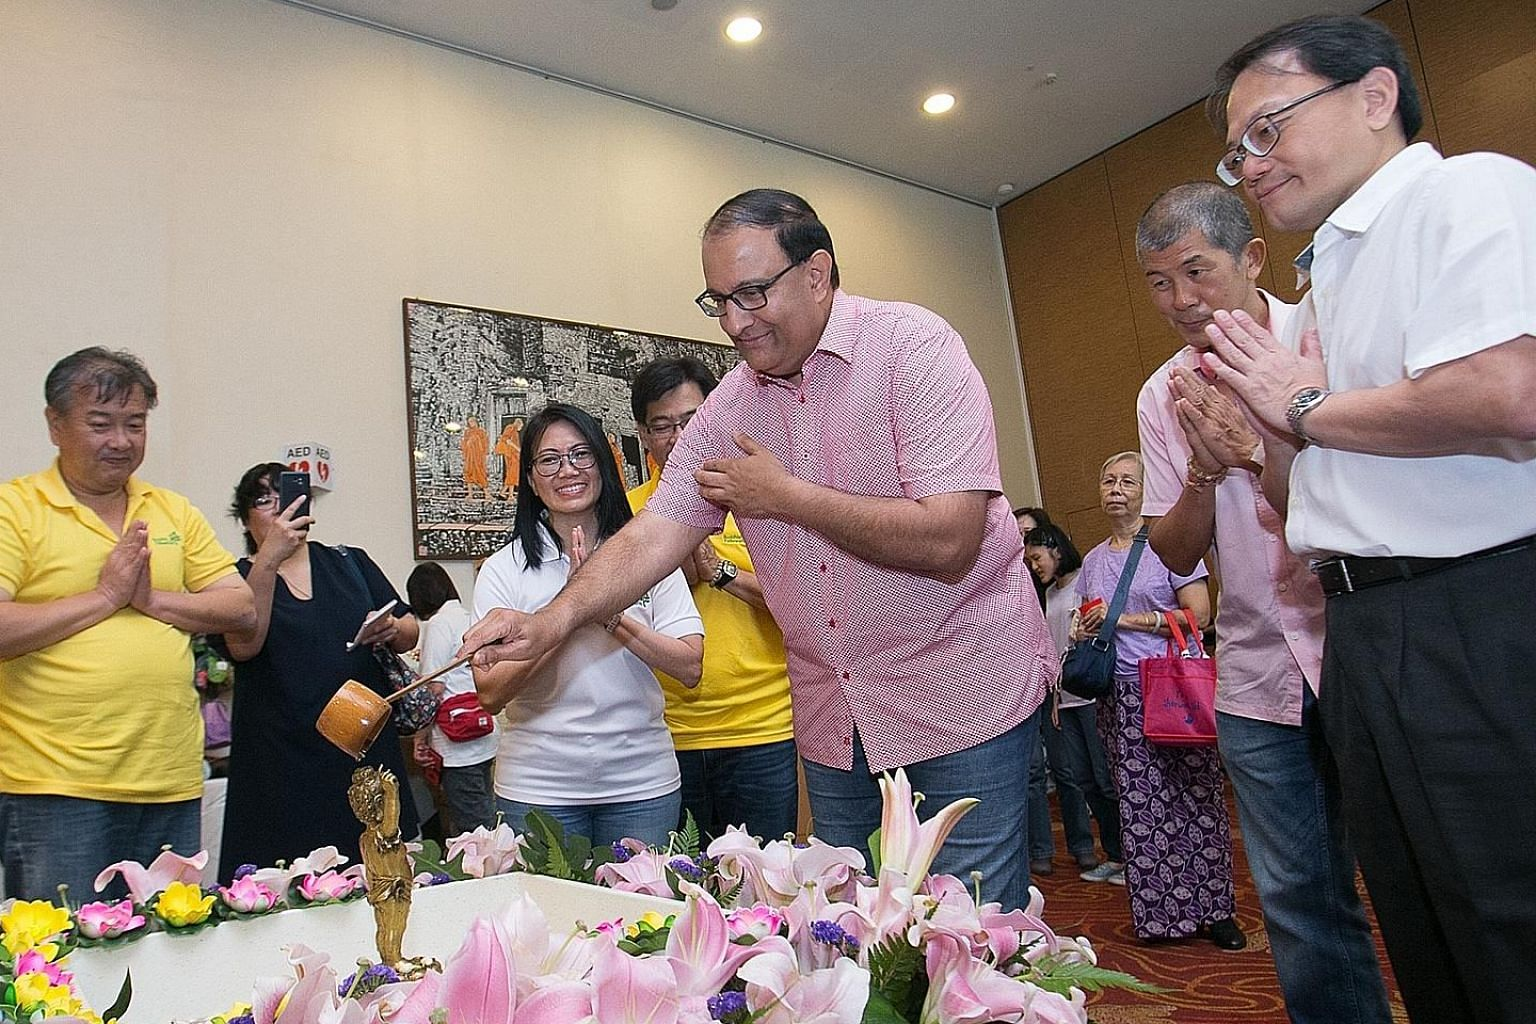 Minister for Communications and Information S. Iswaran bathing a statue of Siddhartha Gautama yesterday at the Vesak Day celebrations. With him are Buddhist Fellowship president Lim Phang Hong (far right) and deputy president Jerry Ong (second from r